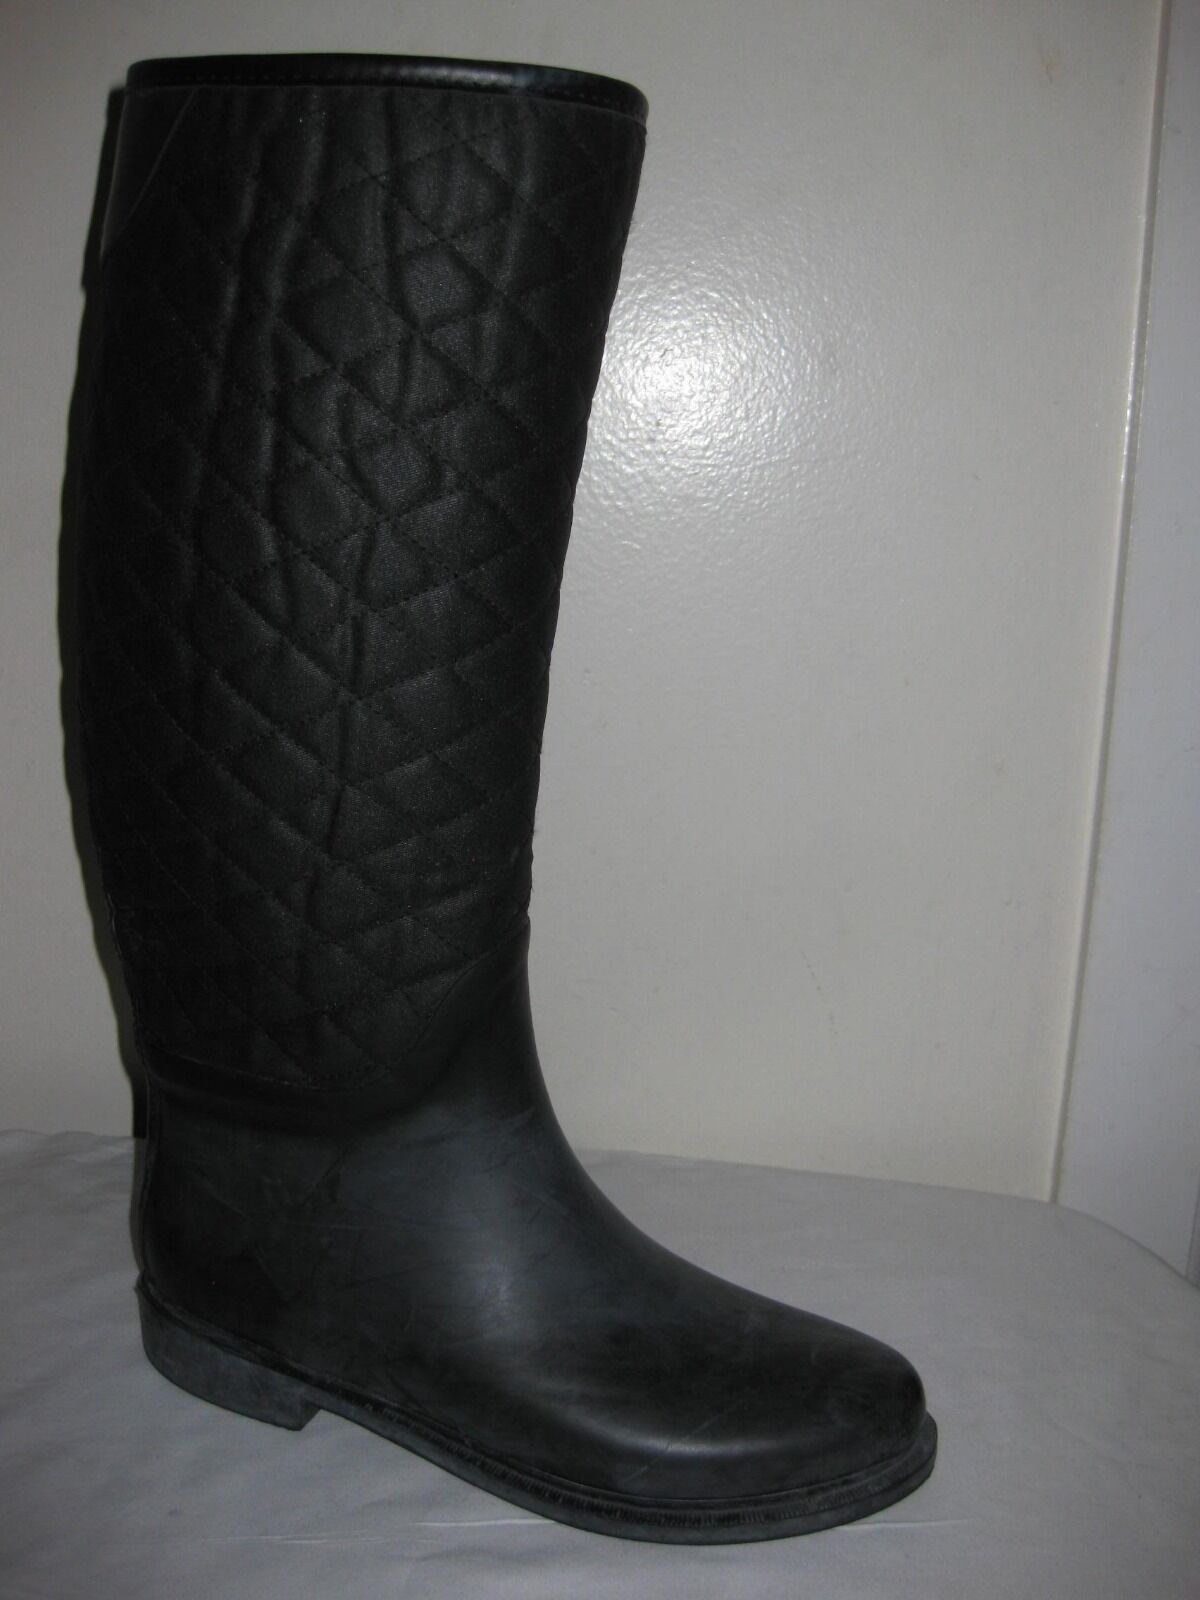 ZARA BASIC  Collection Black Quilted  Rain Boots shoes Size 40 / 9 - 9.5